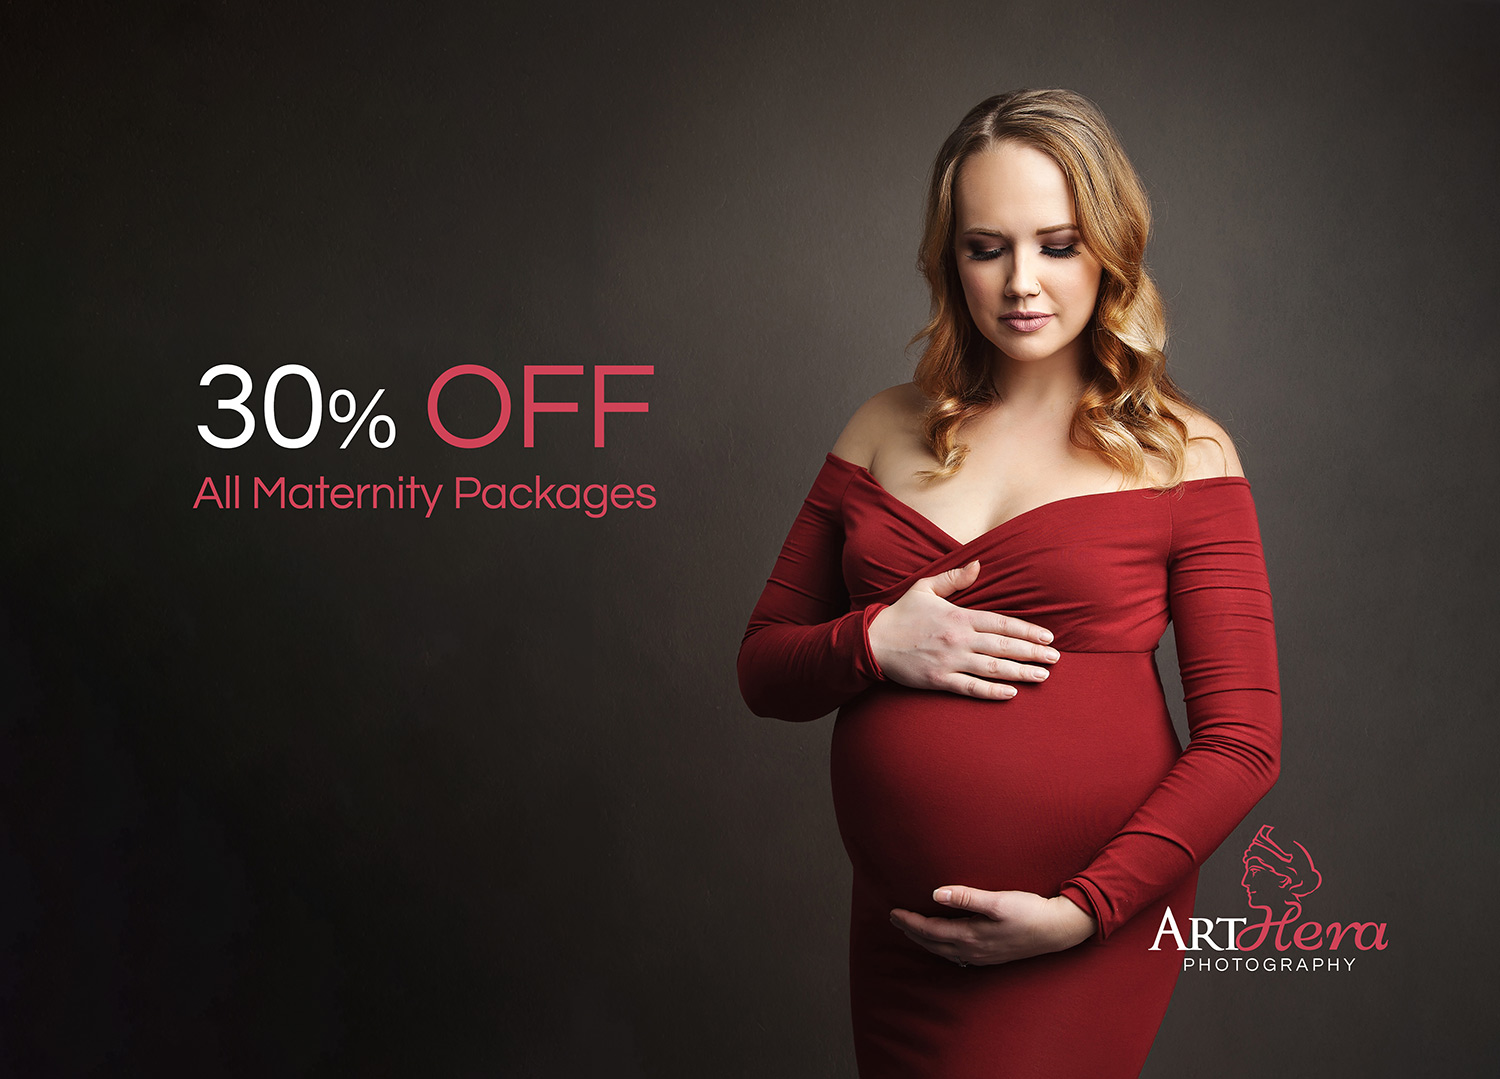 30% OFF Maternity Packages